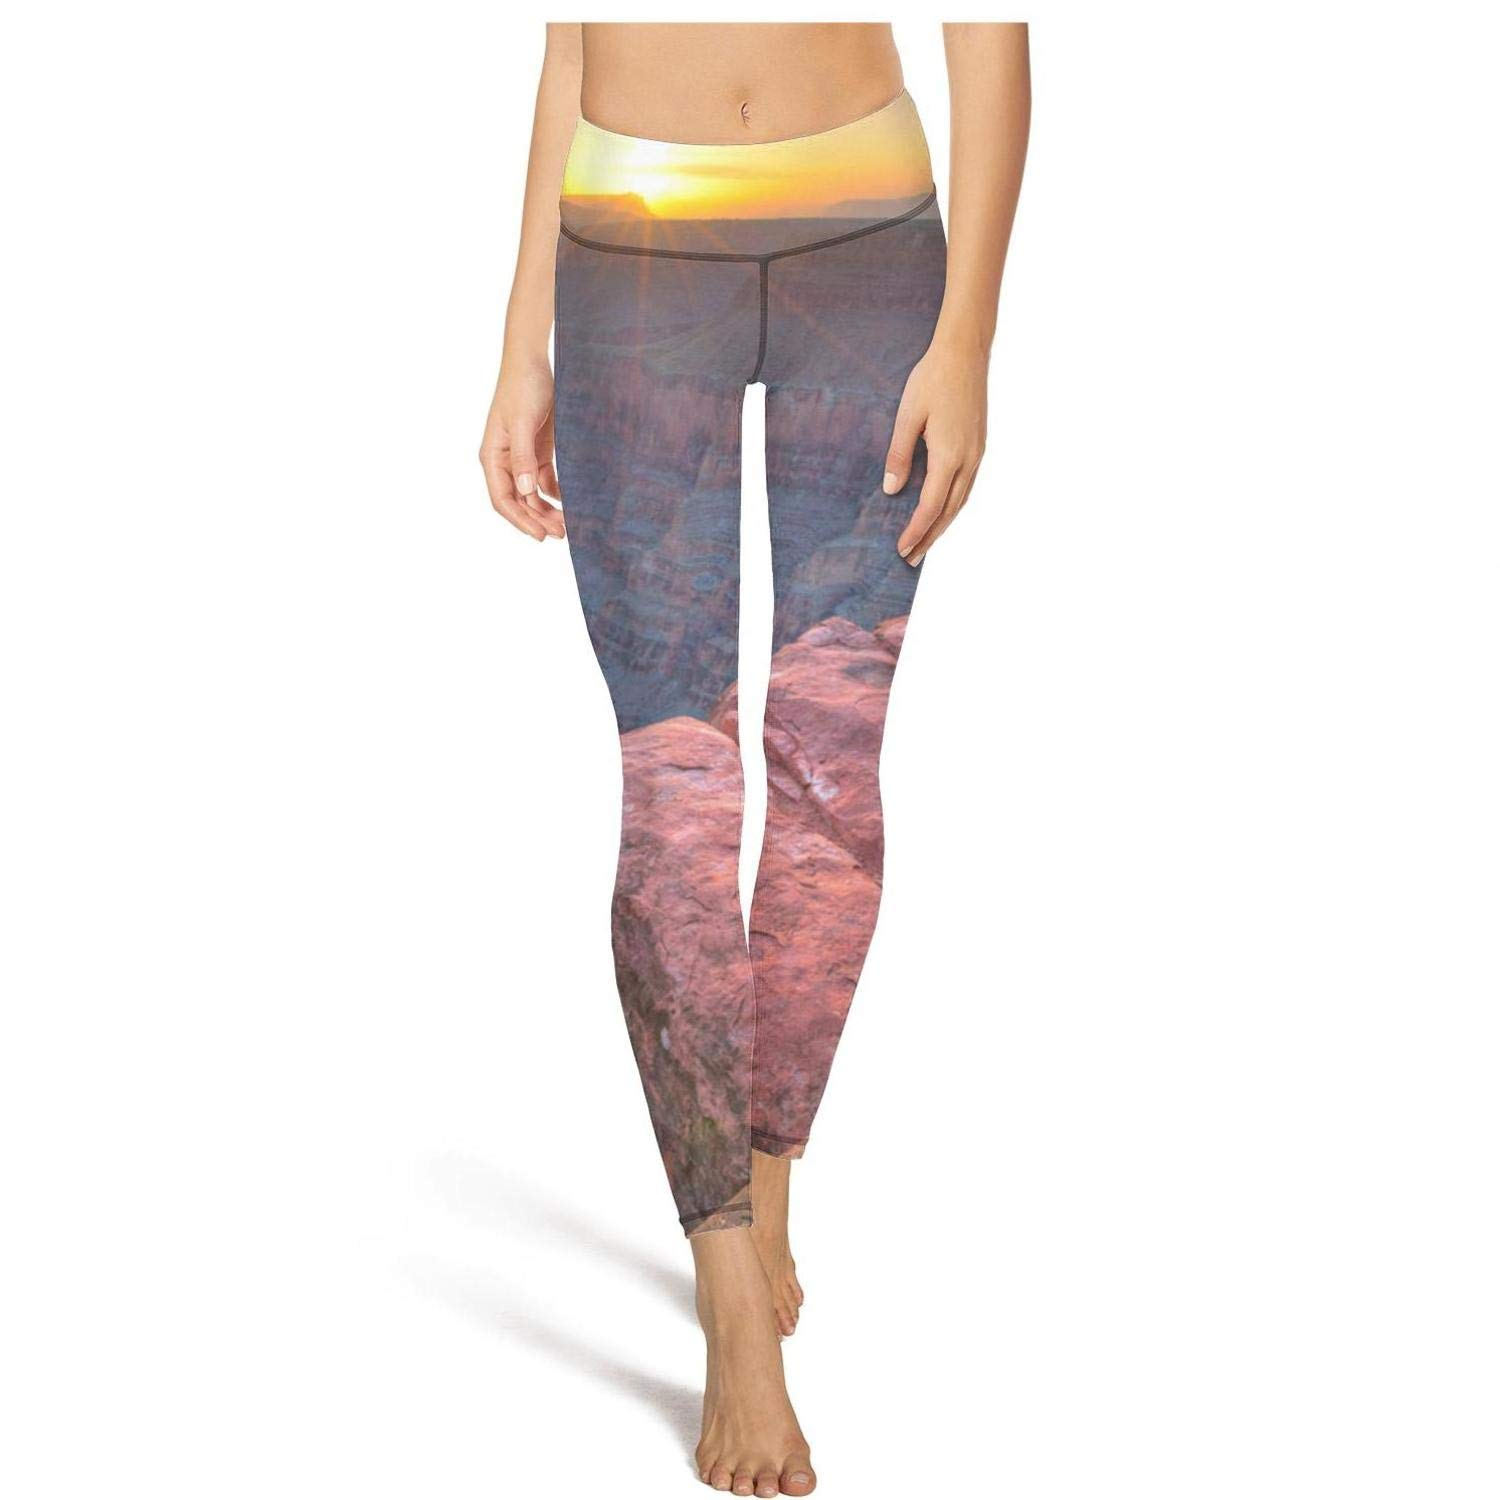 Coloured high Waisted Leggings for Women Sports Yoga Pants ...